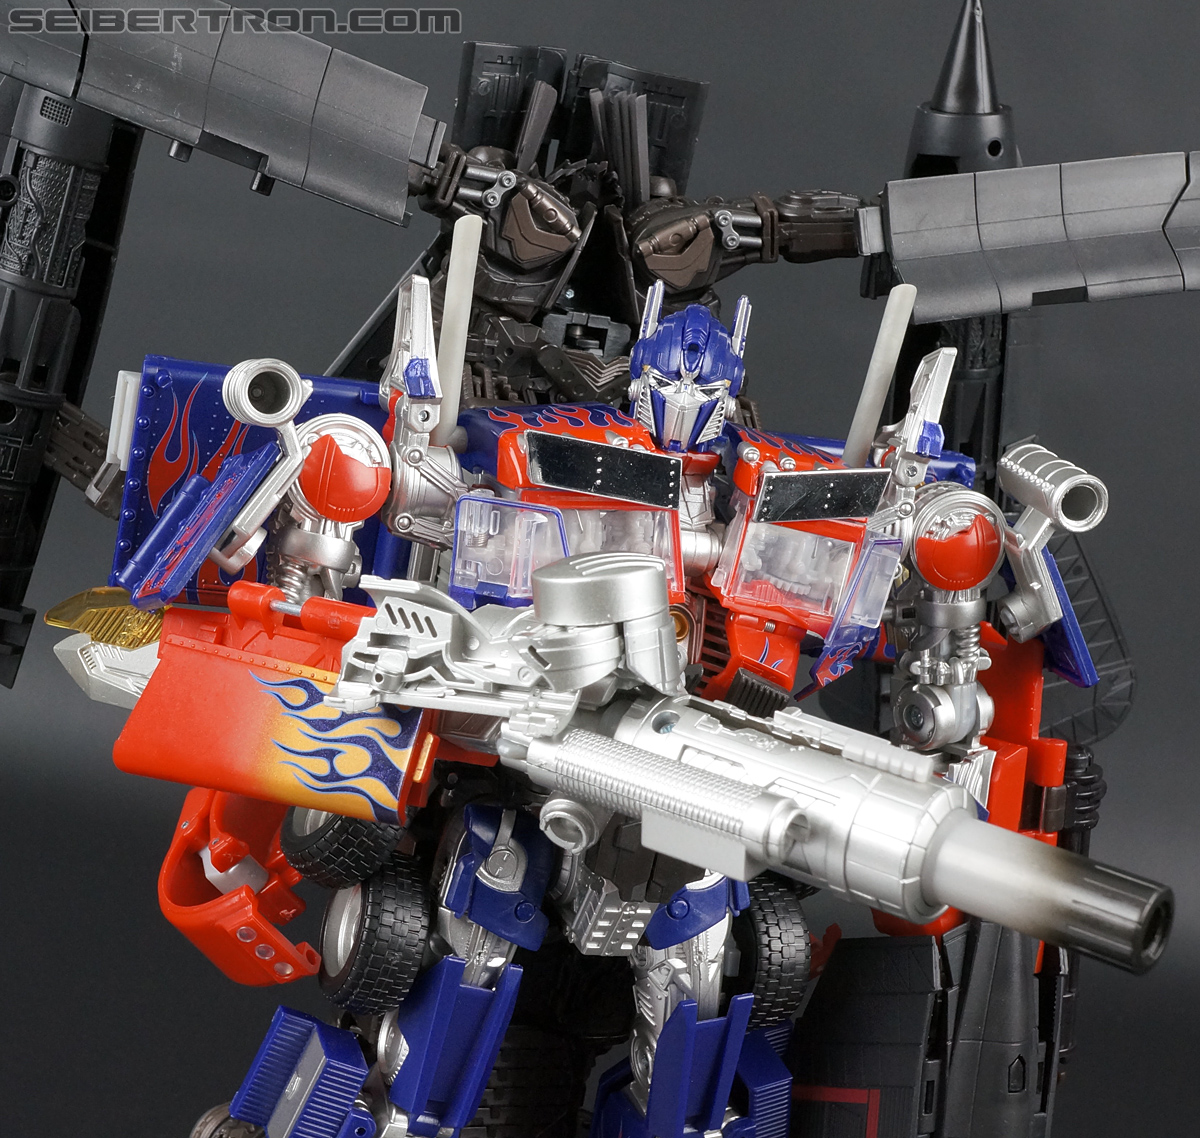 Transformers Revenge of the Fallen Jetpower Optimus Prime (Jetpower 2-pack) (Reissue) (Image #82 of 110)